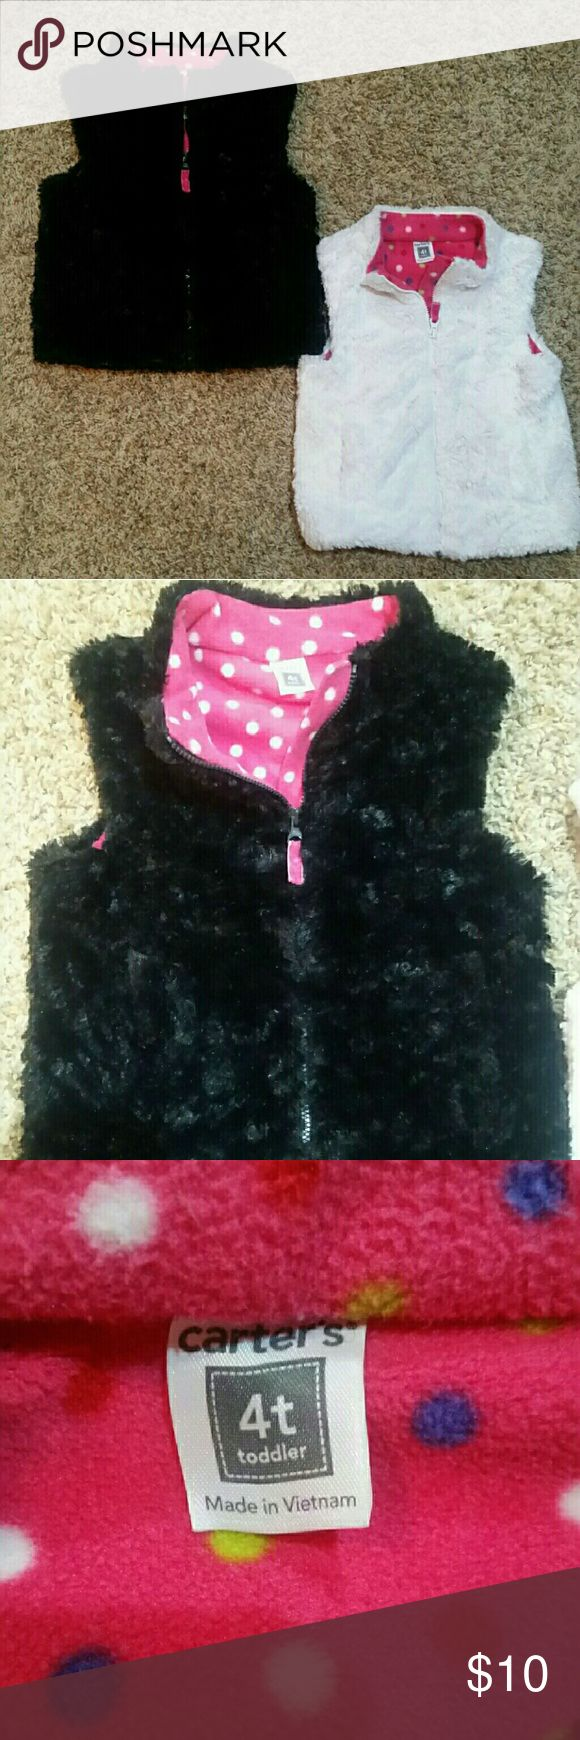 2 for $10. 2- soft and fuzzy reversible vests 1 black and 1 white with bright pink polka dot interior ... like new condition Children's Place Jackets & Coats Vests